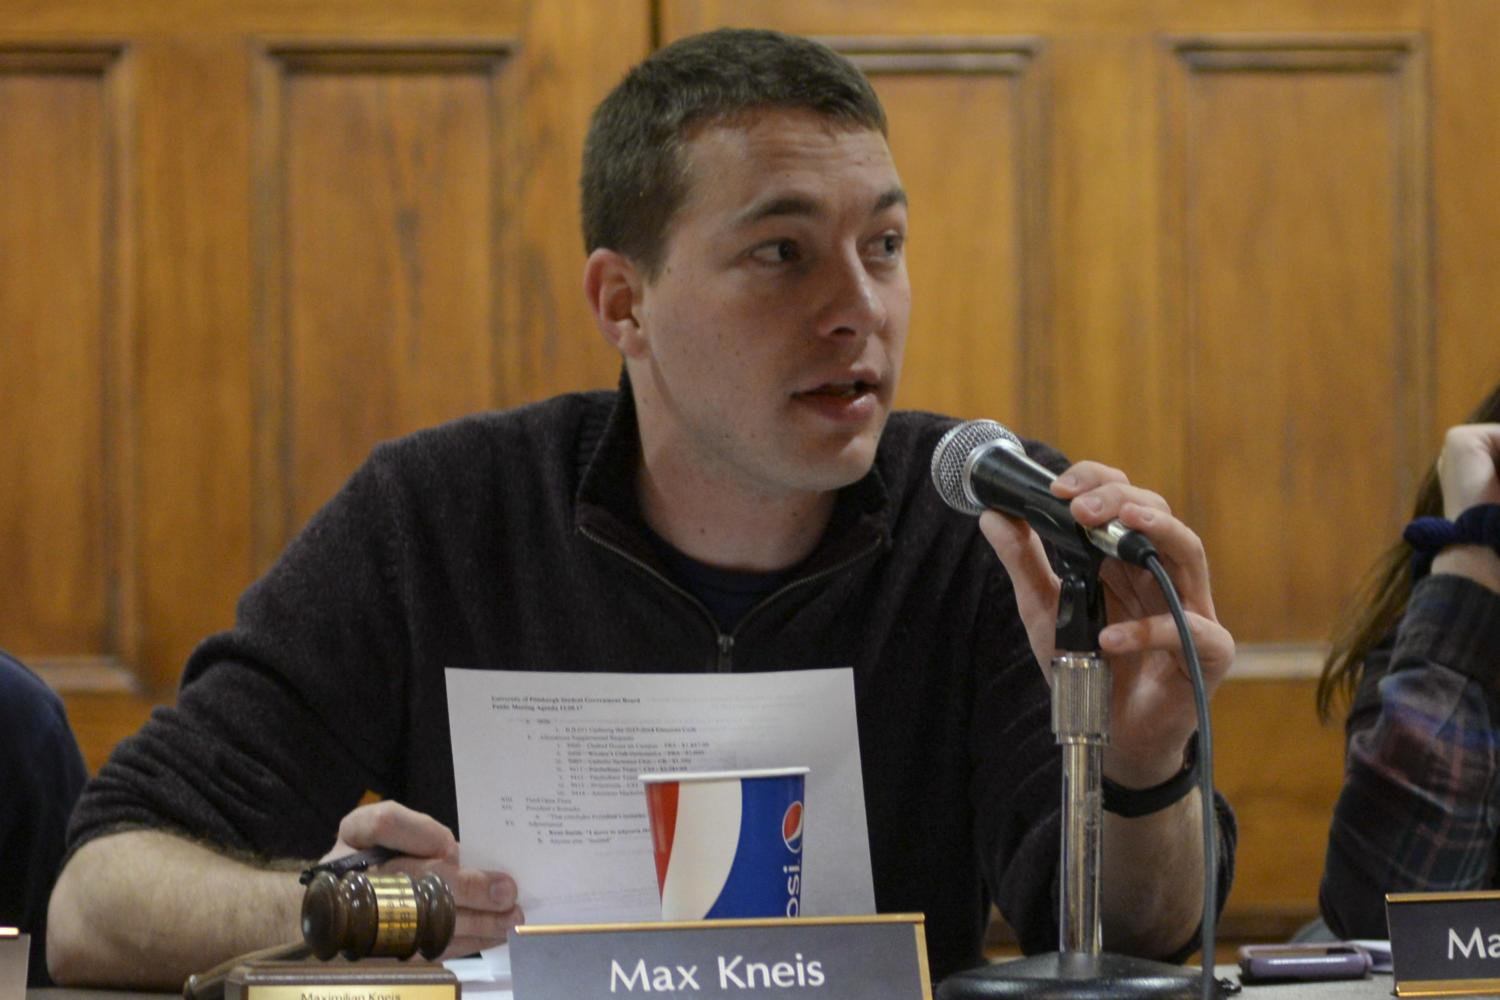 SGB President Max Kneis discusses the possibility of improving Pitt's student union and reminds students to fill out Princeton Review and OMET surveys during Tuesday's meeting. (Photo by Sarah Cutshall | Staff Photographer)